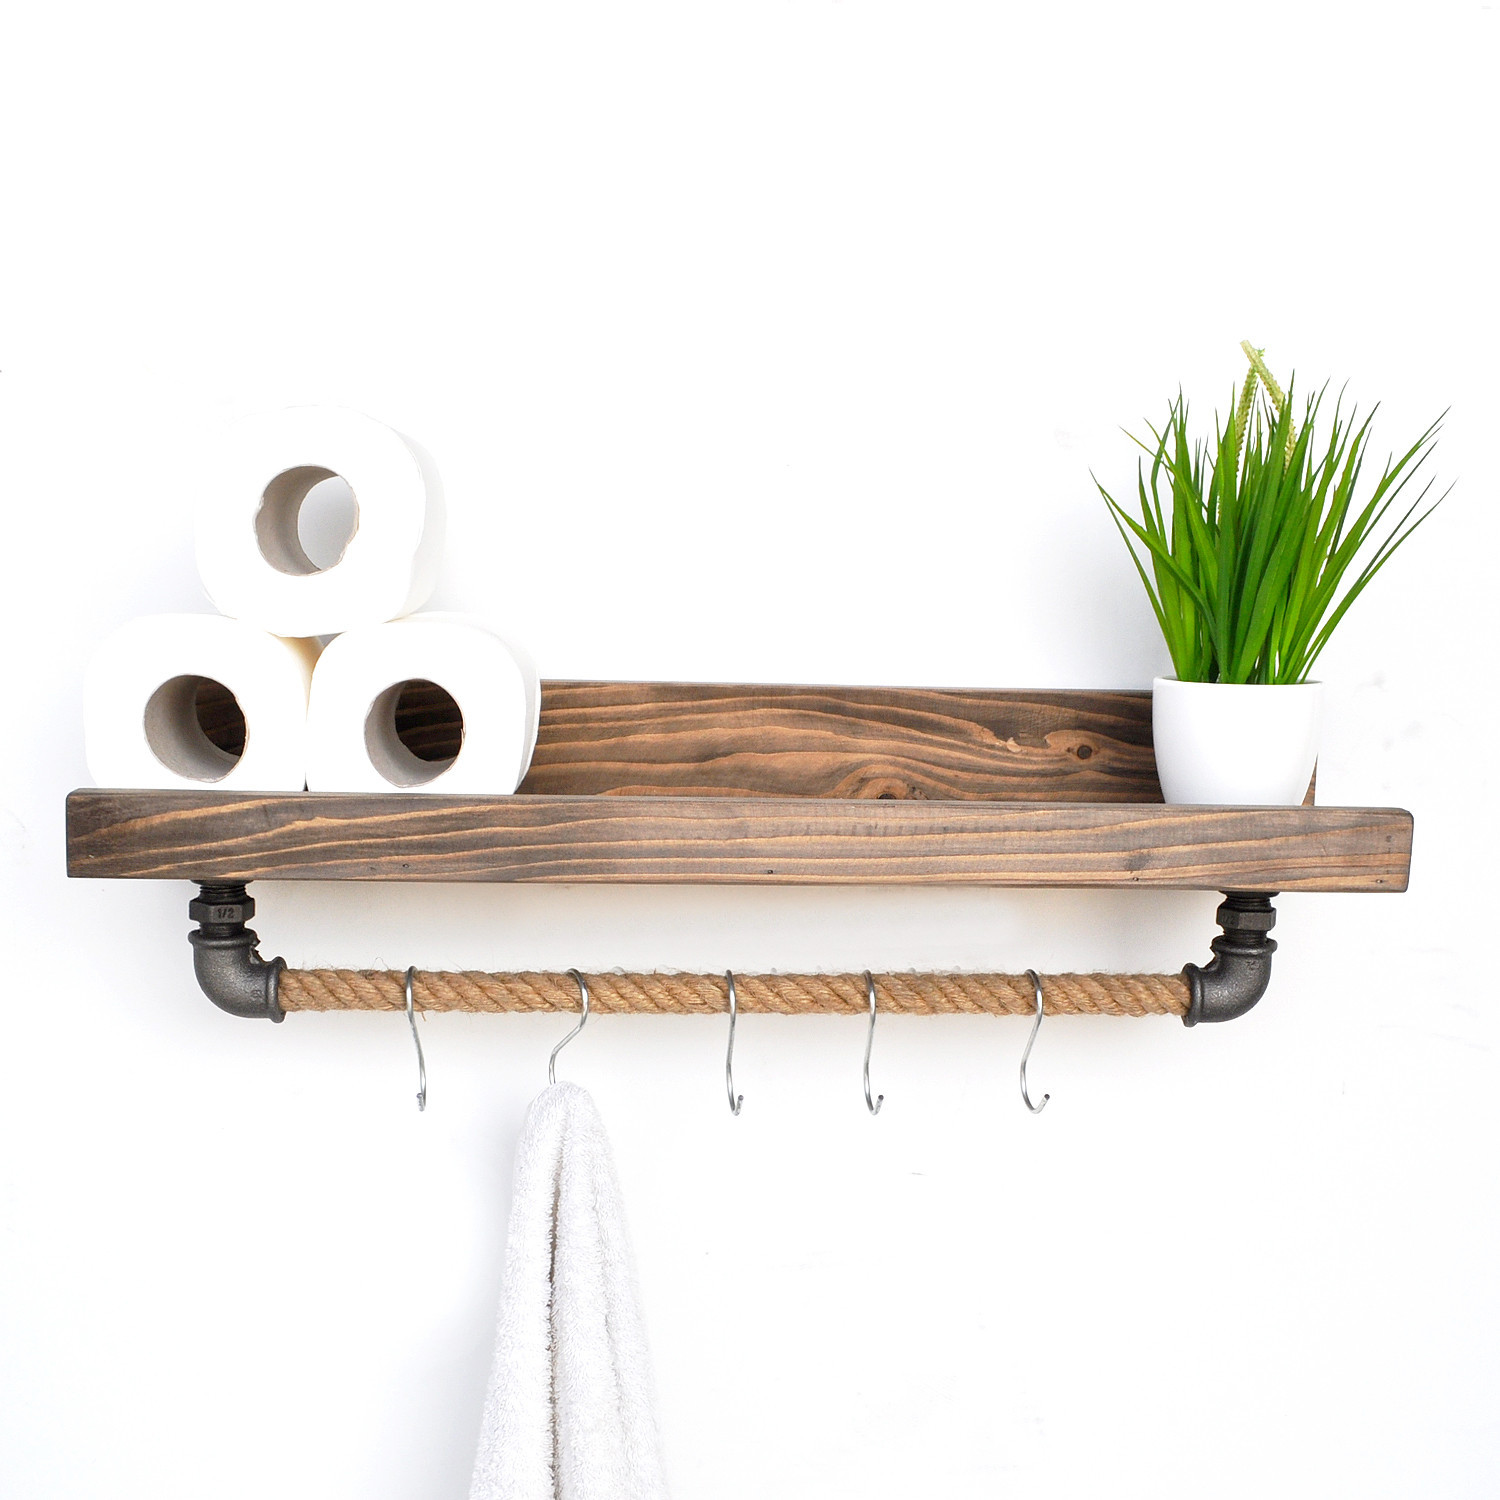 Pipe Shelf with 5 Metal Hooks | Spruce Wood & Rope